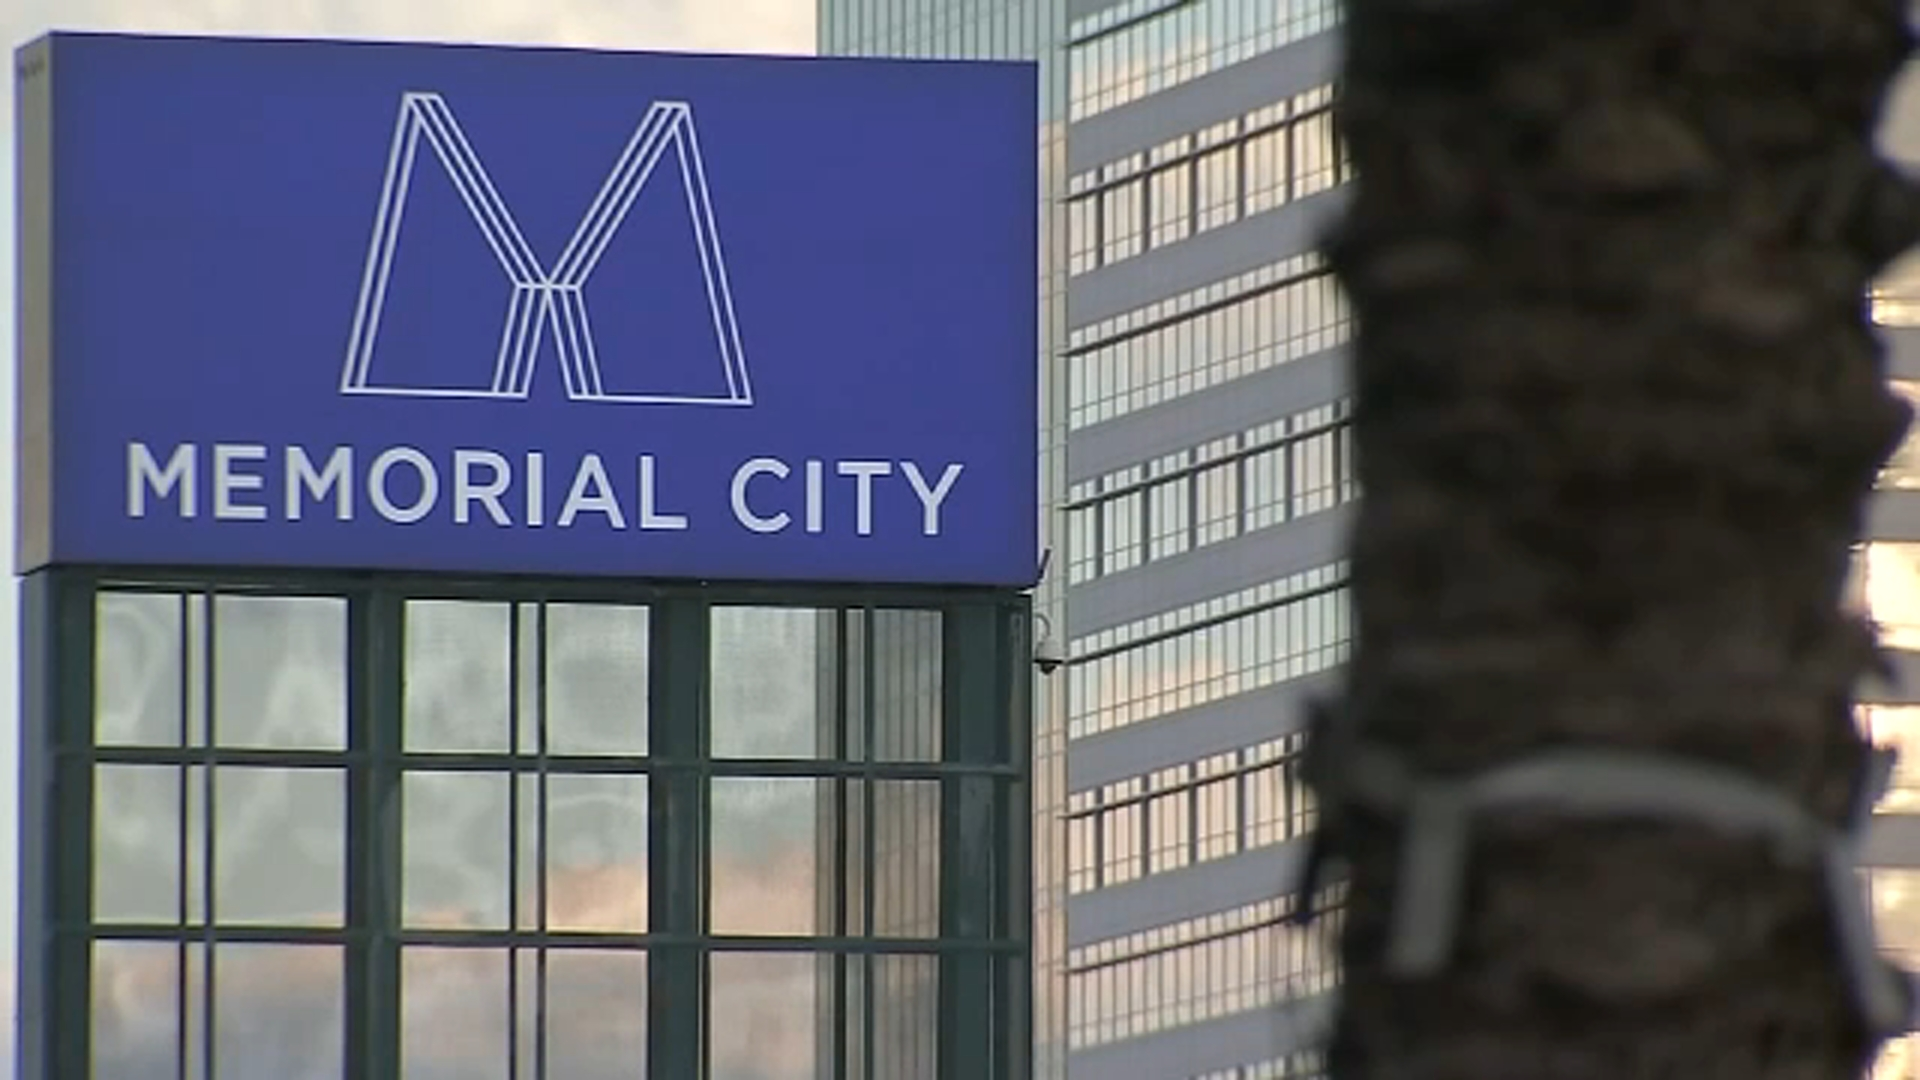 Memorial City Mall kicks off redevelopment plan that will make space 'more vibrant' and 'upscale'